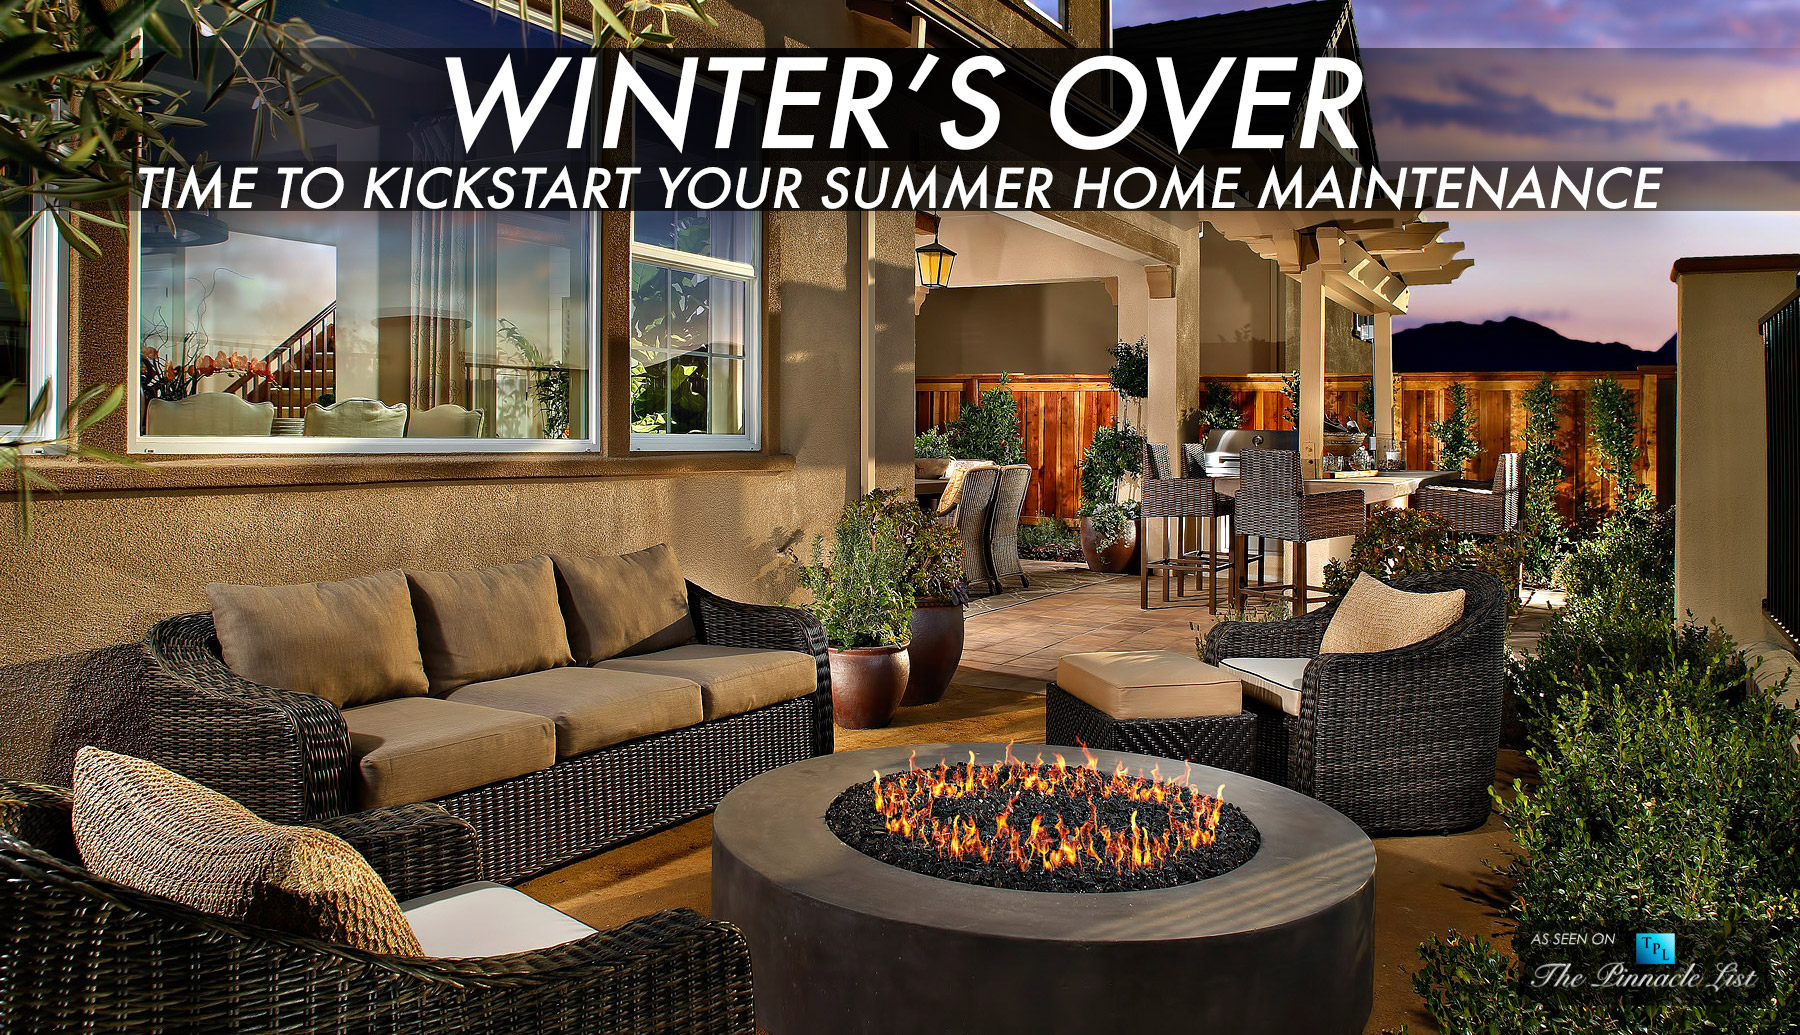 Winter's Over - Time to Kickstart Your Summer Home Maintenance